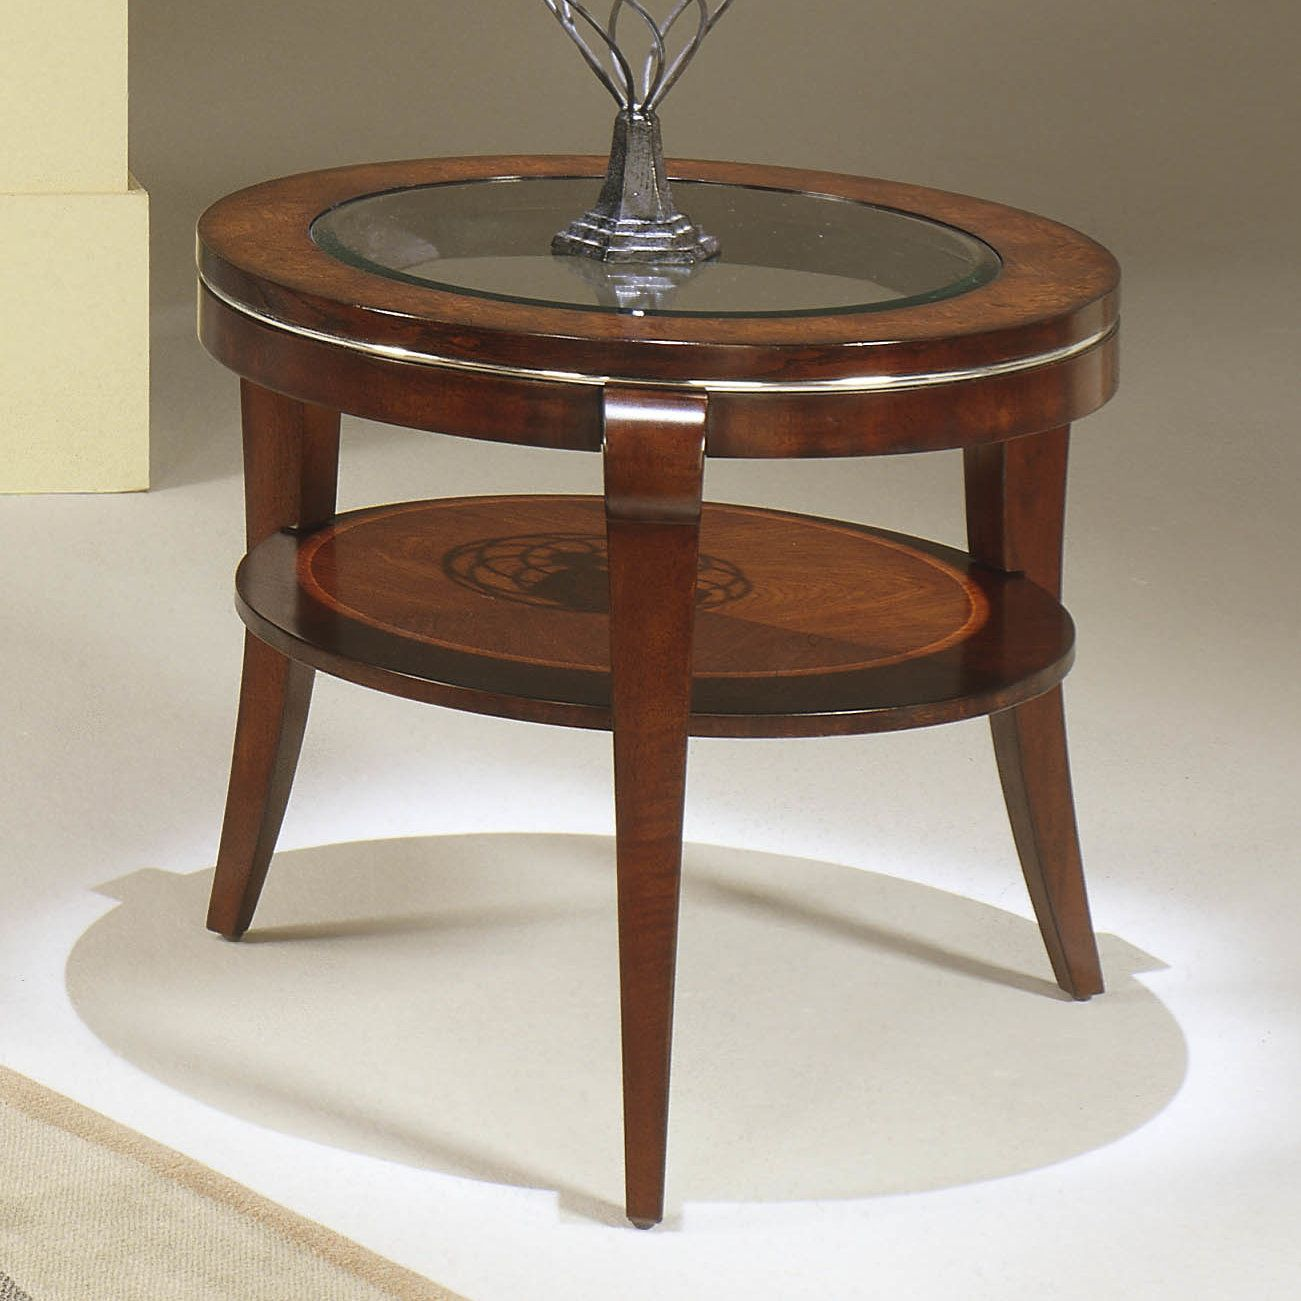 Settee End Table Buxton Round End Inset Glass Products Furniture Furniture